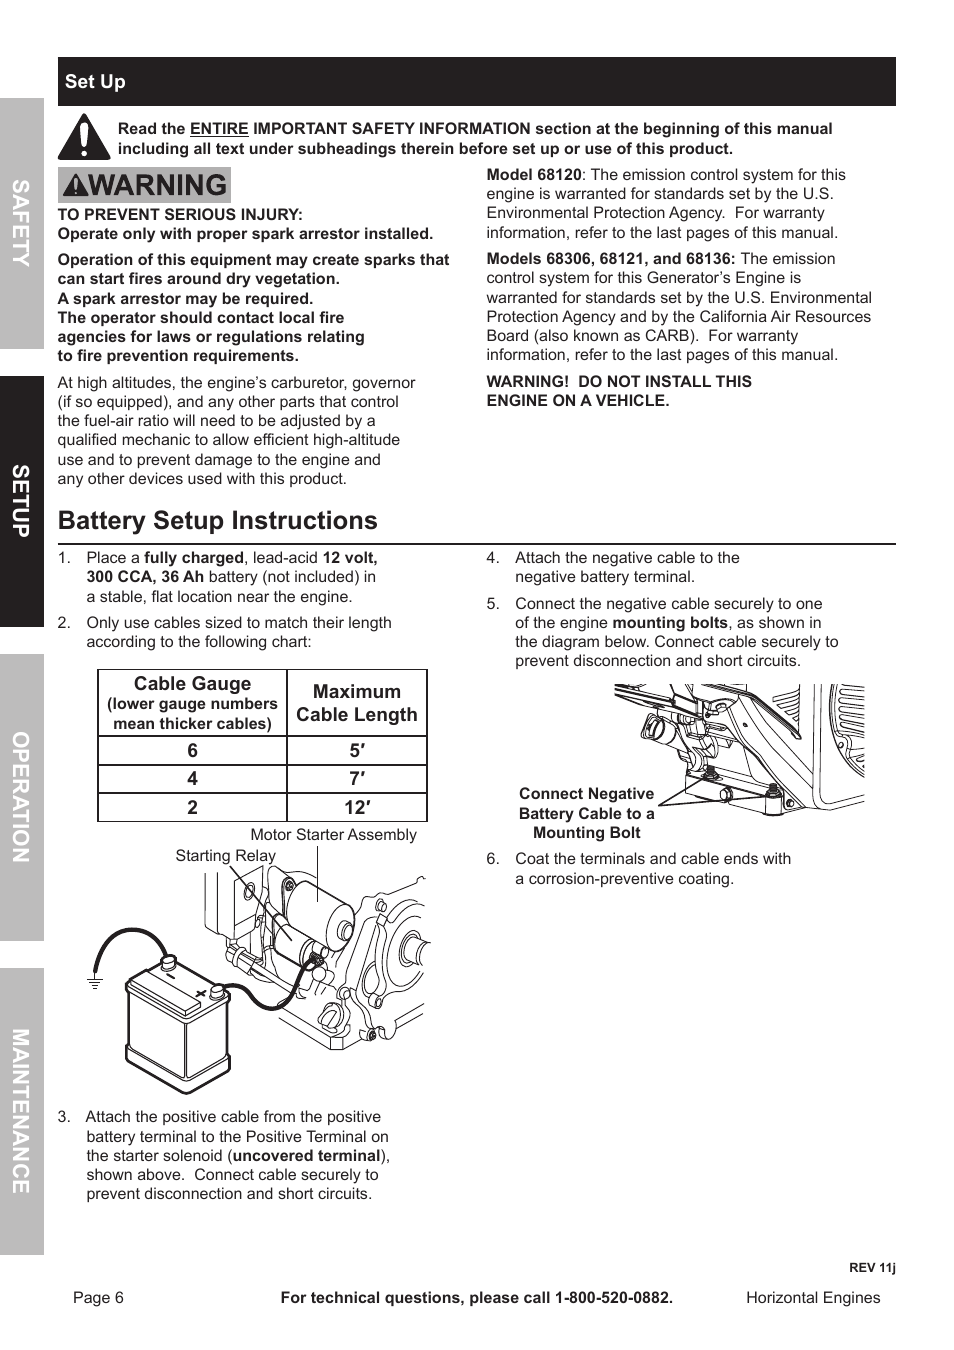 Battery setup instructions, Safety opera tion maintenance